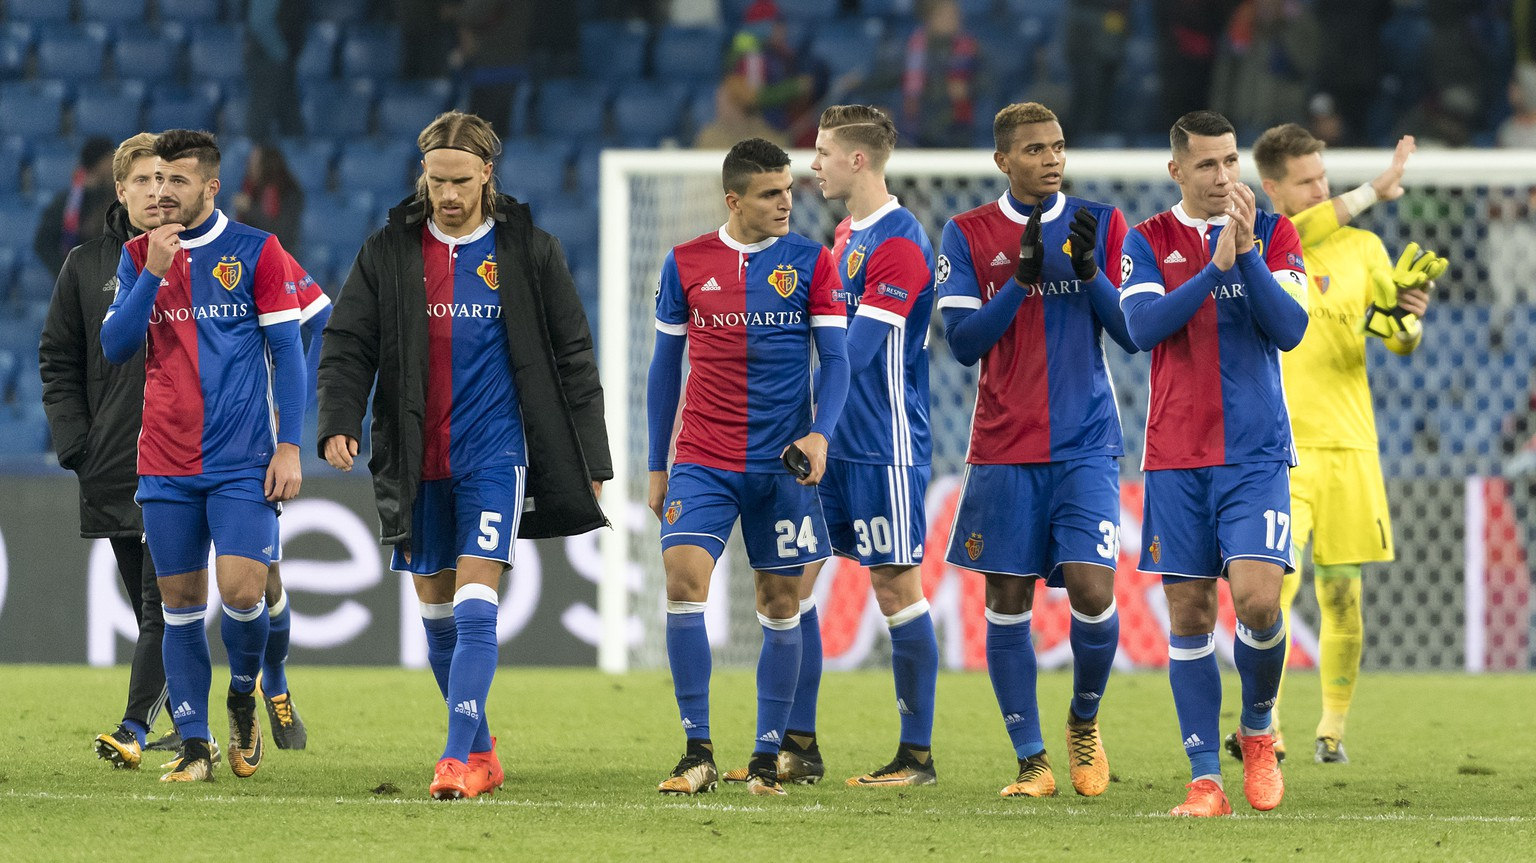 Basel's disappointed players thank the fans after the UEFA Champions League Group stage Group A matchday 4 soccer match between Switzerland's FC Basel 1893 and Russia's CSKA Moskva in the St. Jakob-Park stadium in Basel, Switzerland, on Tuesday, October 31, 2017. (KEYSTONE/Georgios Kefalas)